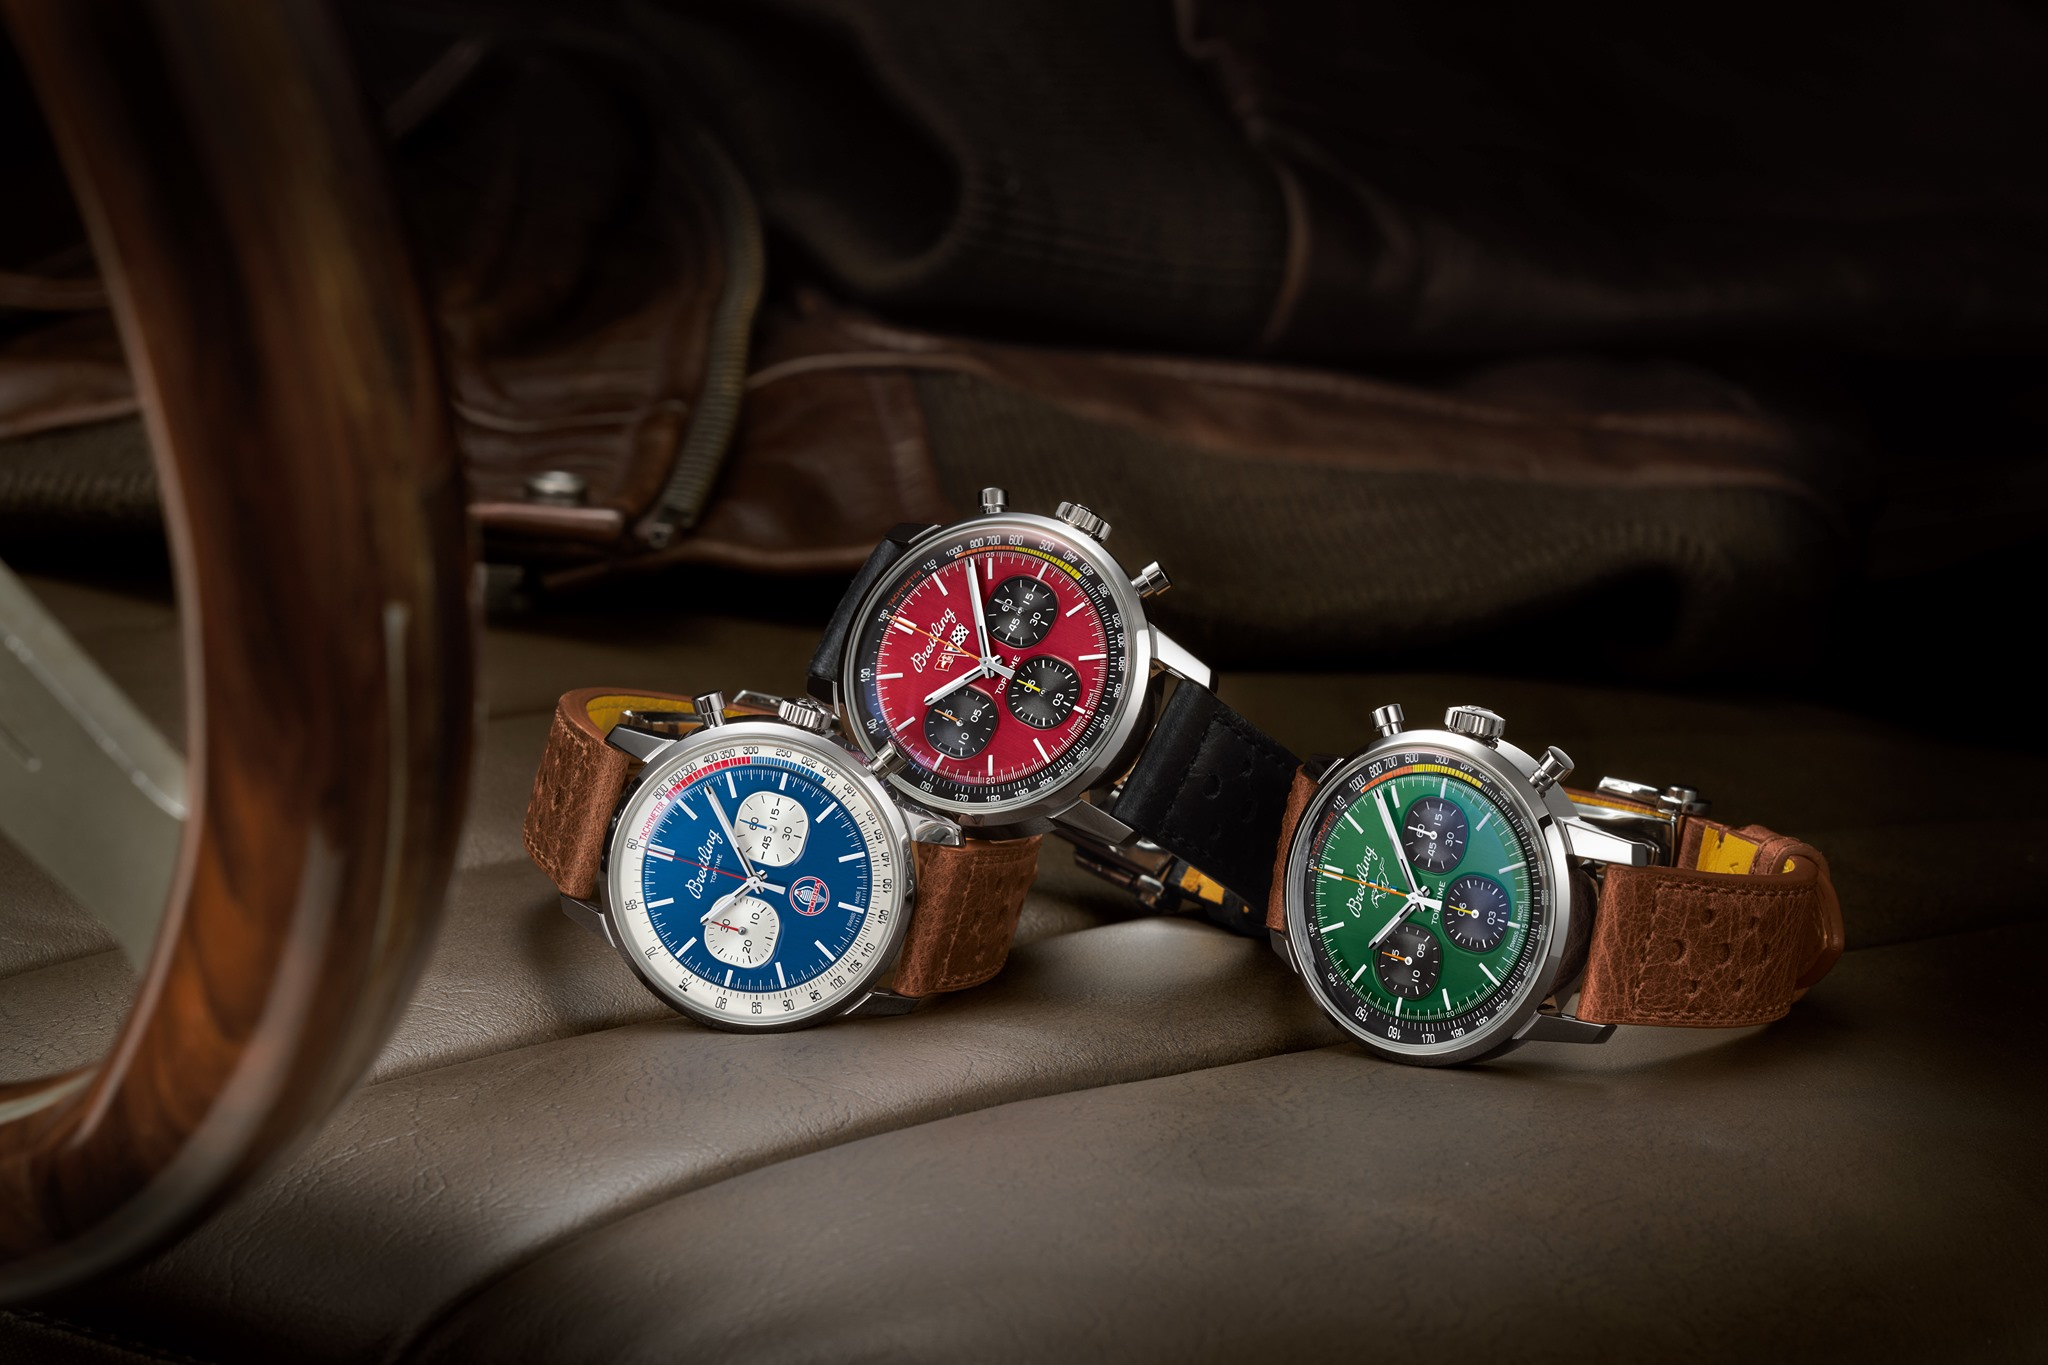 Breitling Top Time Classic Cars Capsule Collection 1